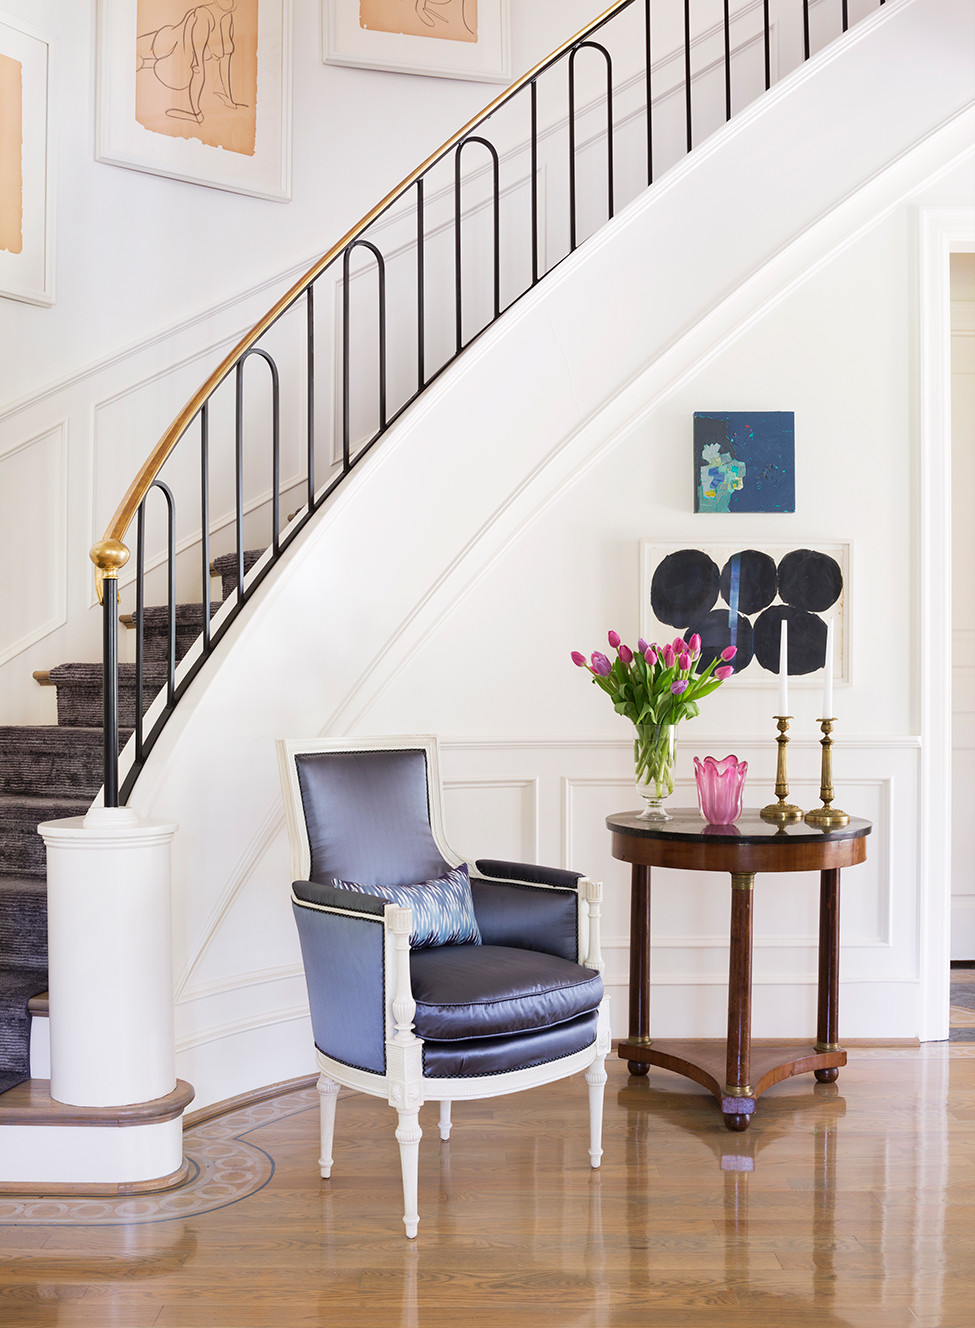 By Design: Interior Design Advice From Little Rock Experts